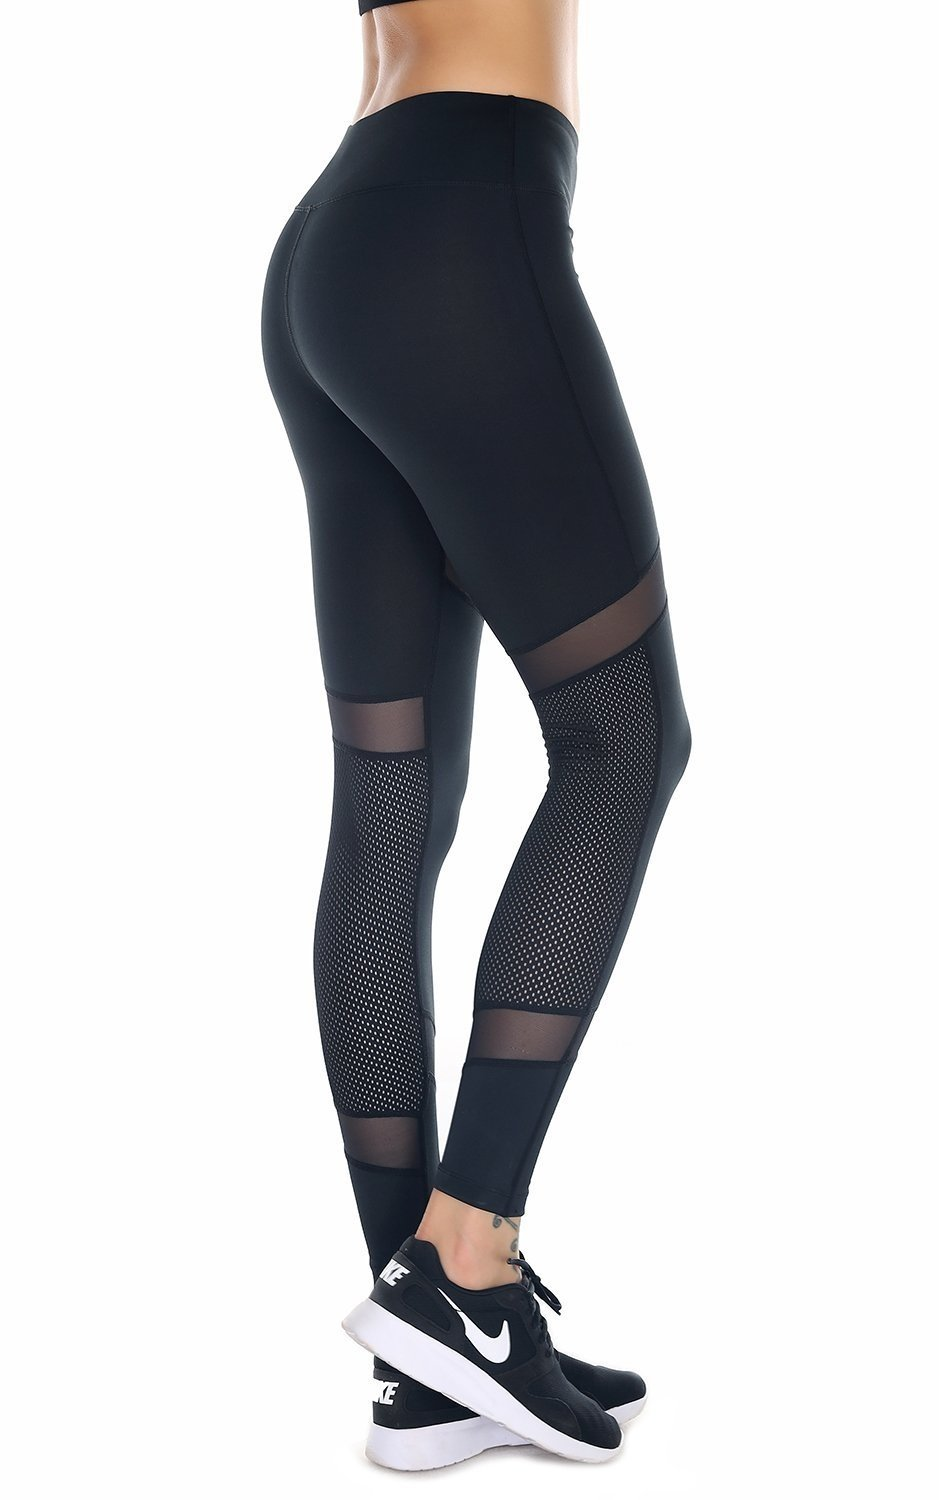 9b43c71743d19 YIVEKO Tight (S-XL) Mesh Panels Yoga Pants Stretchy Women Leggings Gym  Fitness Workout Non See Through, Sports & Outdoors - Amazon Canada